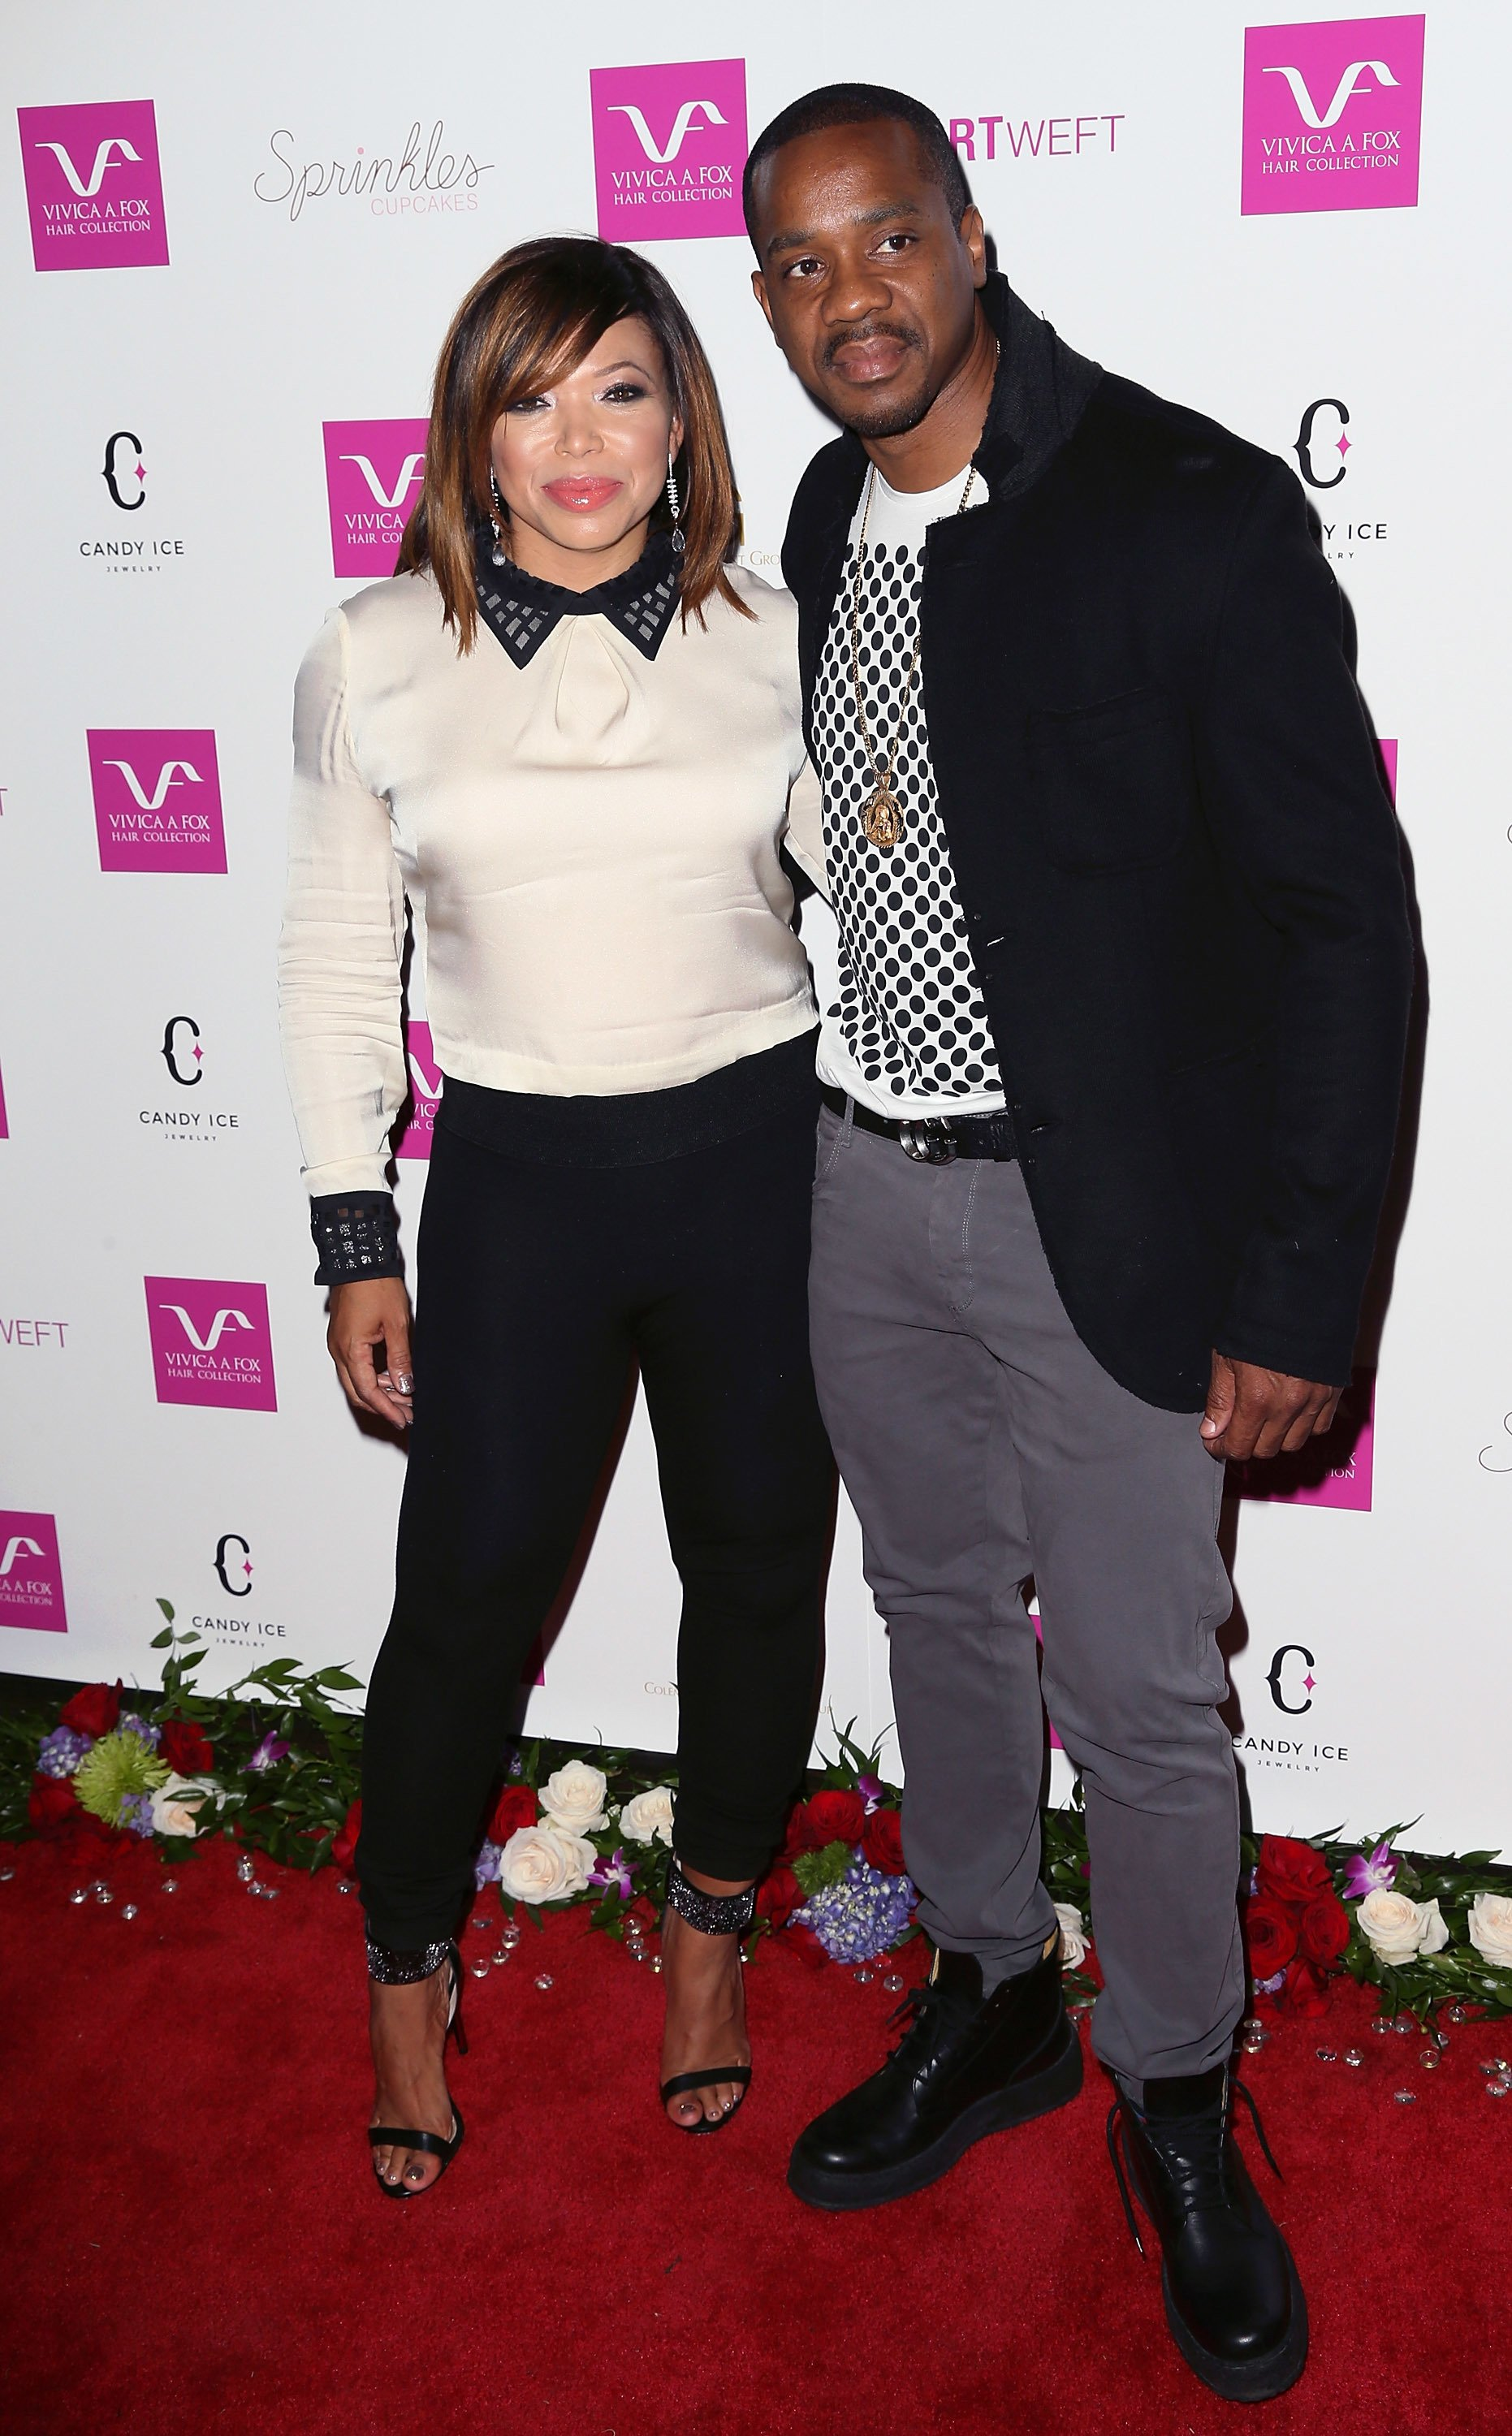 Actress Tisha Campbell-Martin and husband actor Duane Martin attend the Vivica A. Fox 50th birthday celebration at Philippe Chow on August 2, 2014 | Photo: Getty Images